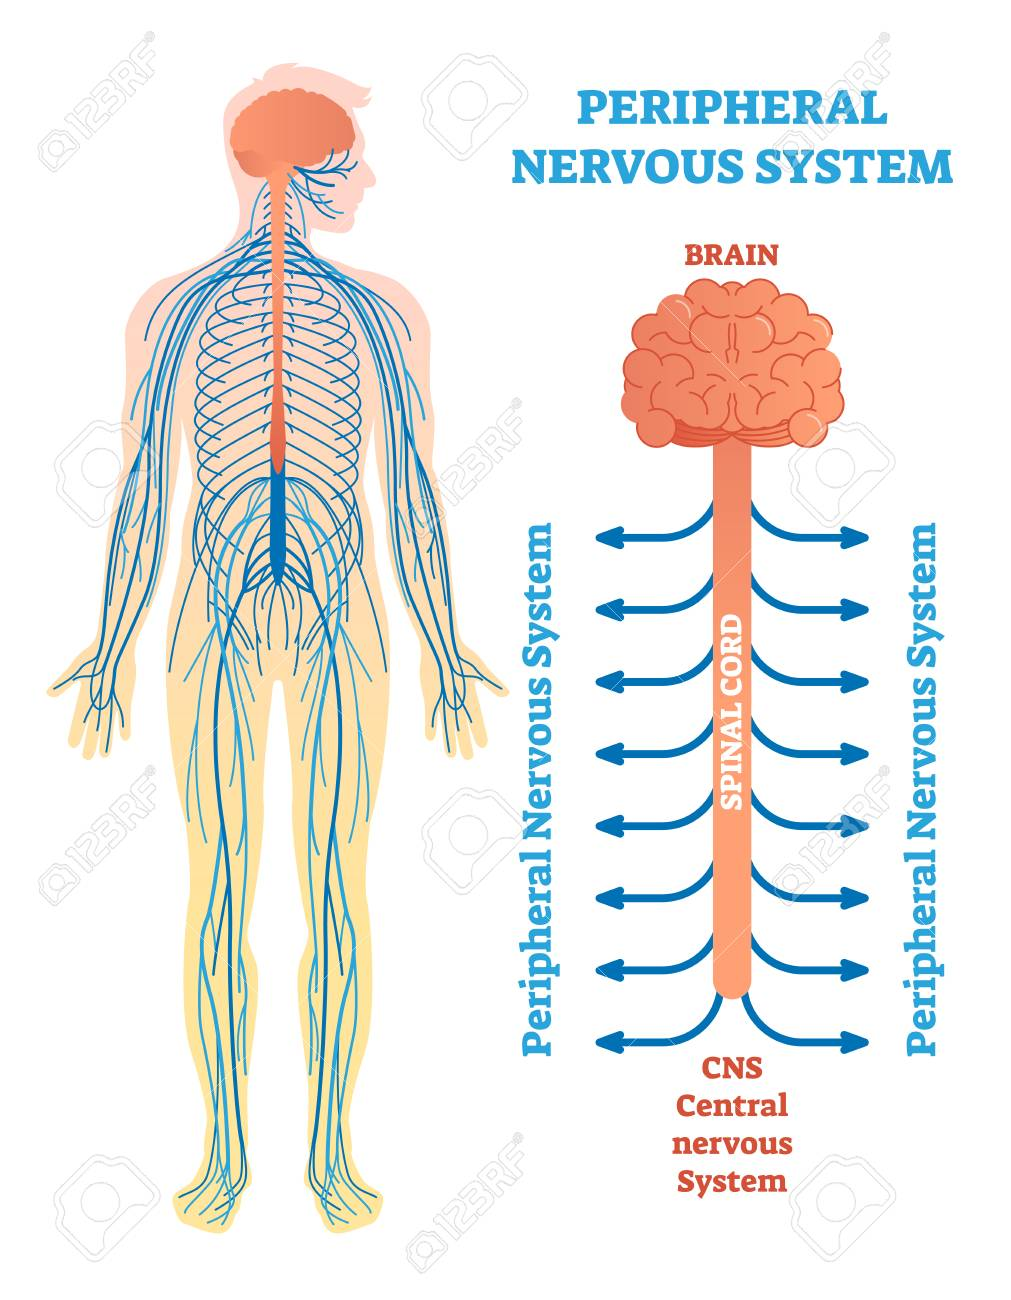 peripheral nervous system, medical vector illustration diagram